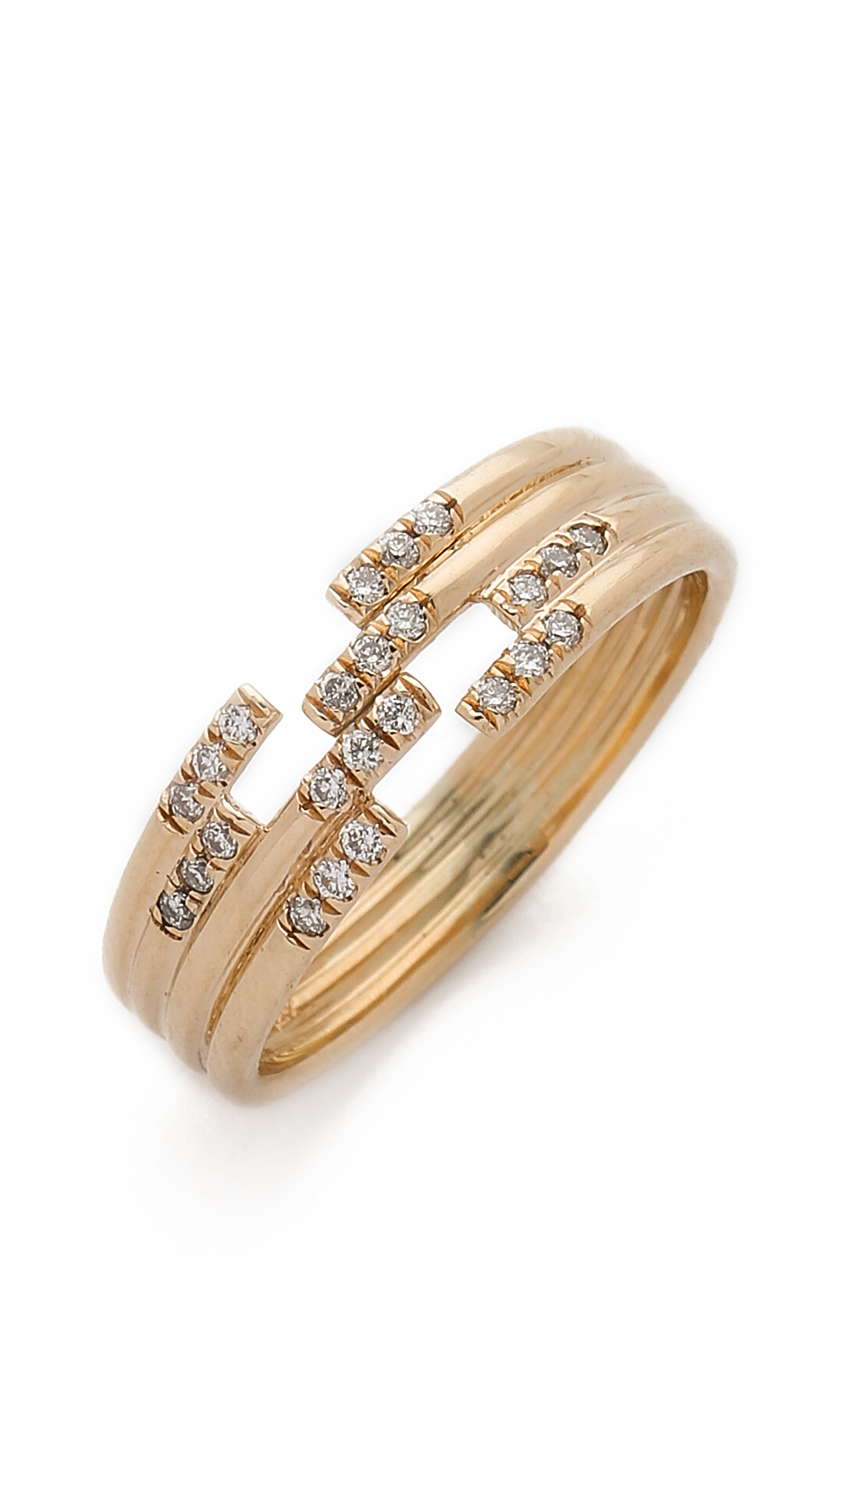 Jennie Kwon Stacked Diamond Cuff Ring - Gold/clear in Metallic